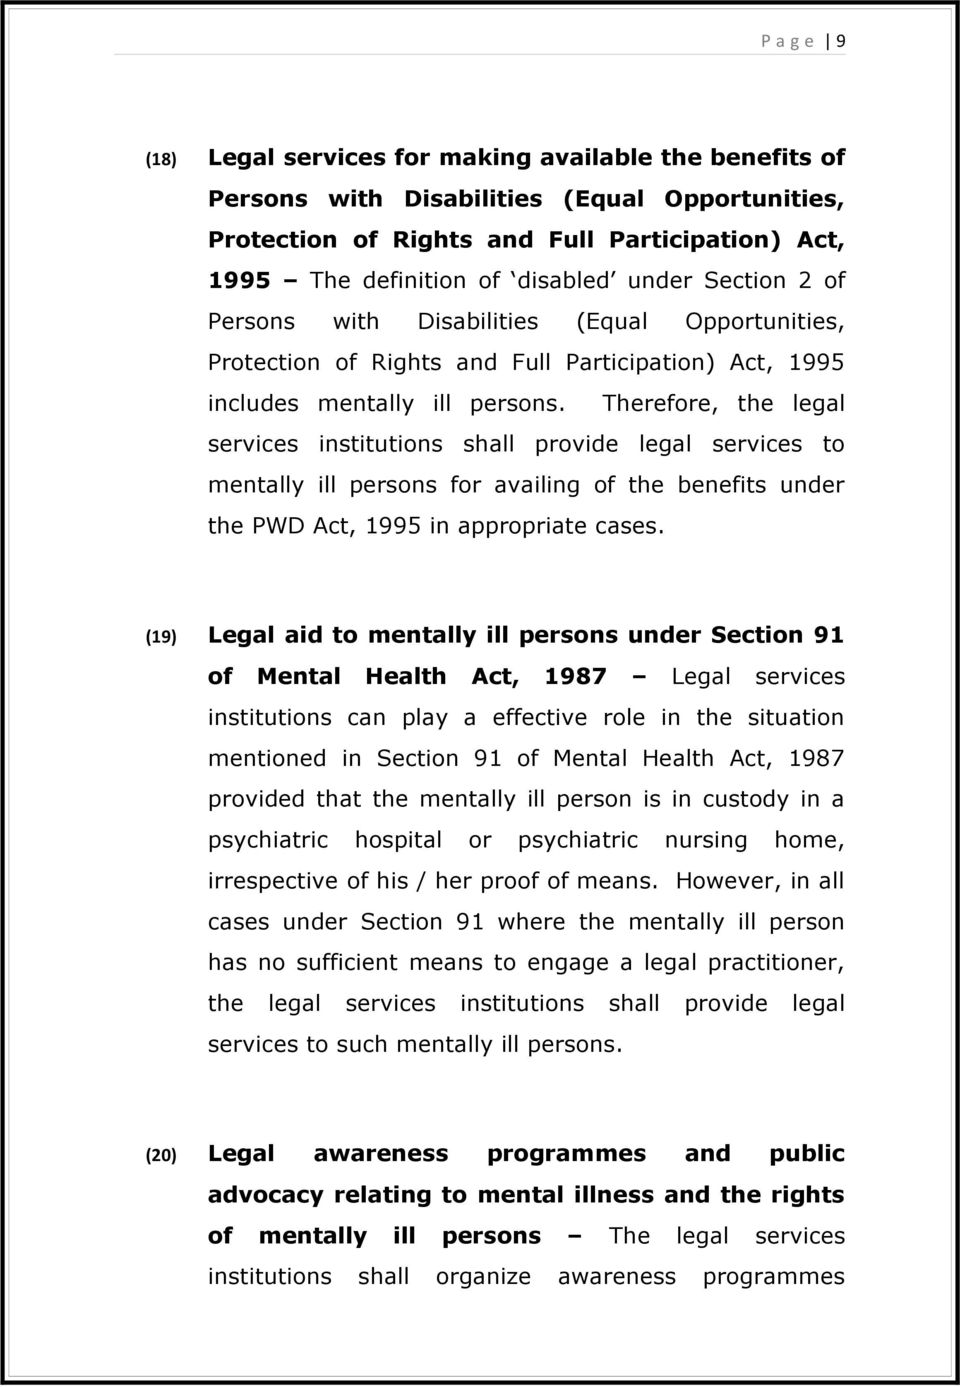 Therefore, the legal services institutions shall provide legal services to mentally ill persons for availing of the benefits under the PWD Act, 1995 in appropriate cases.